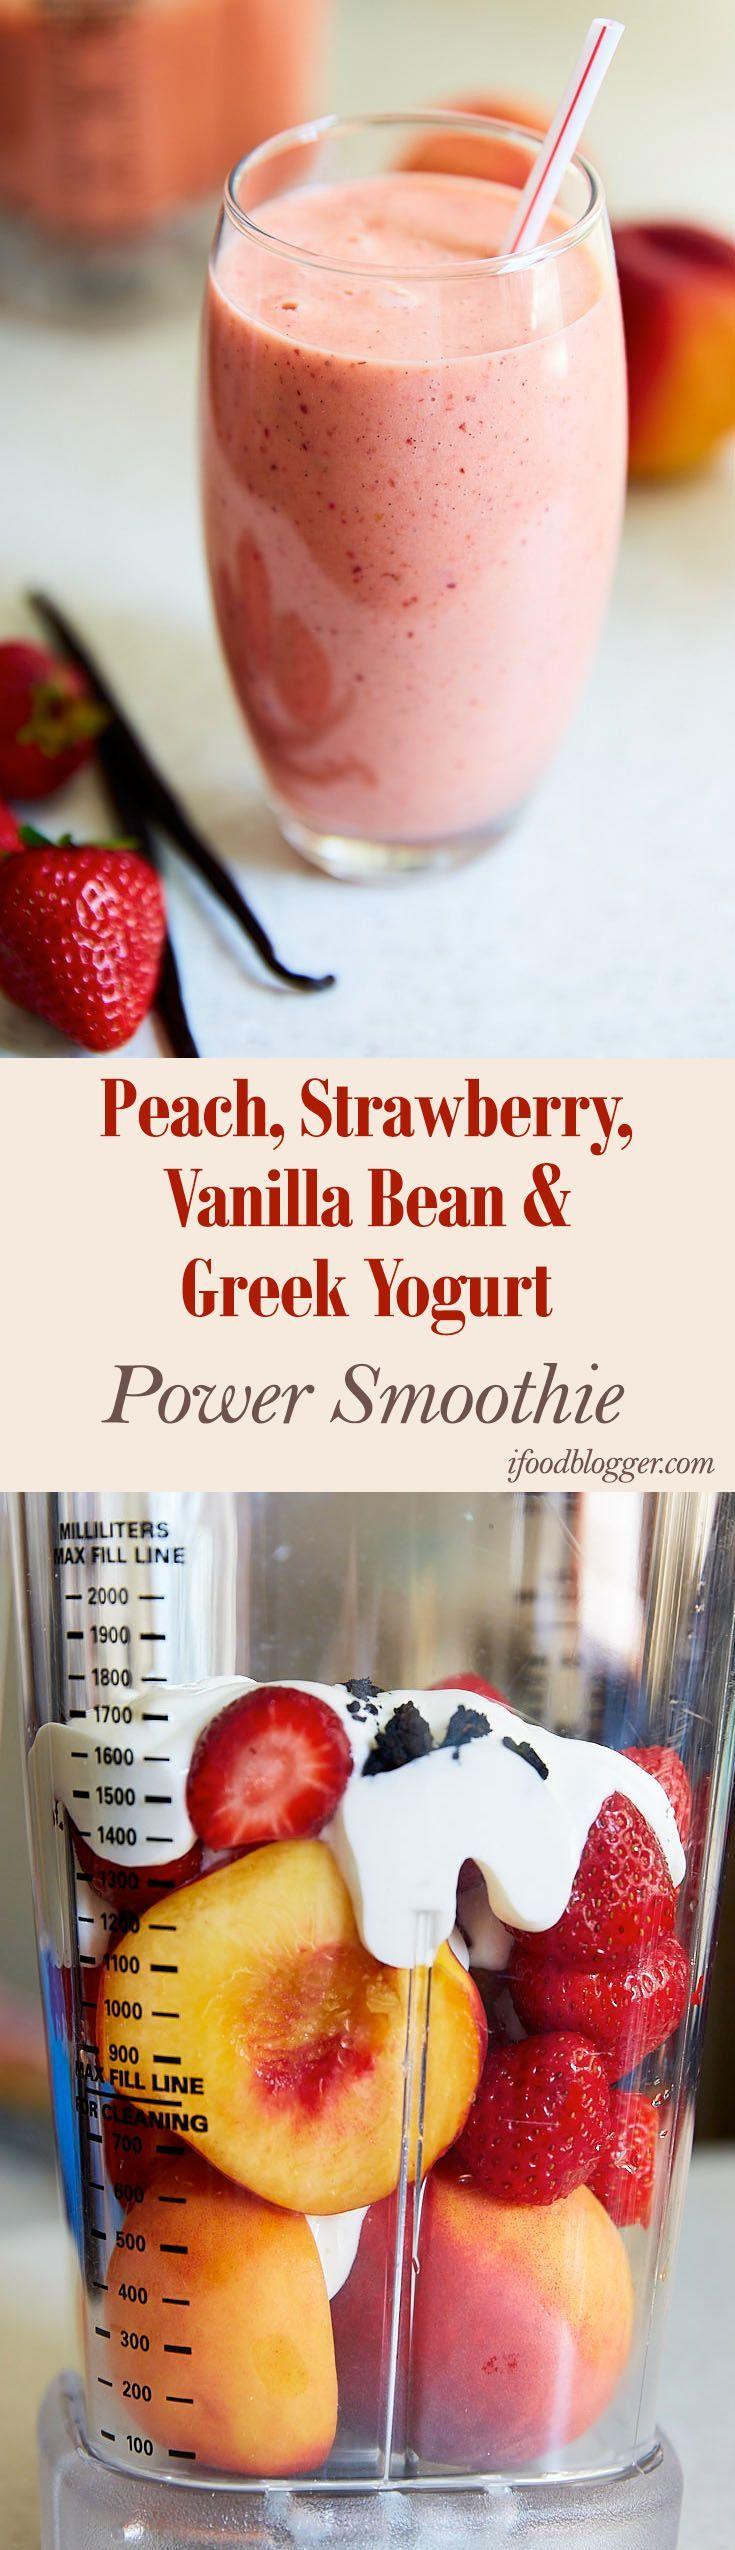 Delicious power Peach Smoothie Recipes. Peach, Strawberry, Vanilla Bean and Greek Yogurt, and more. Perfect for breakfast.